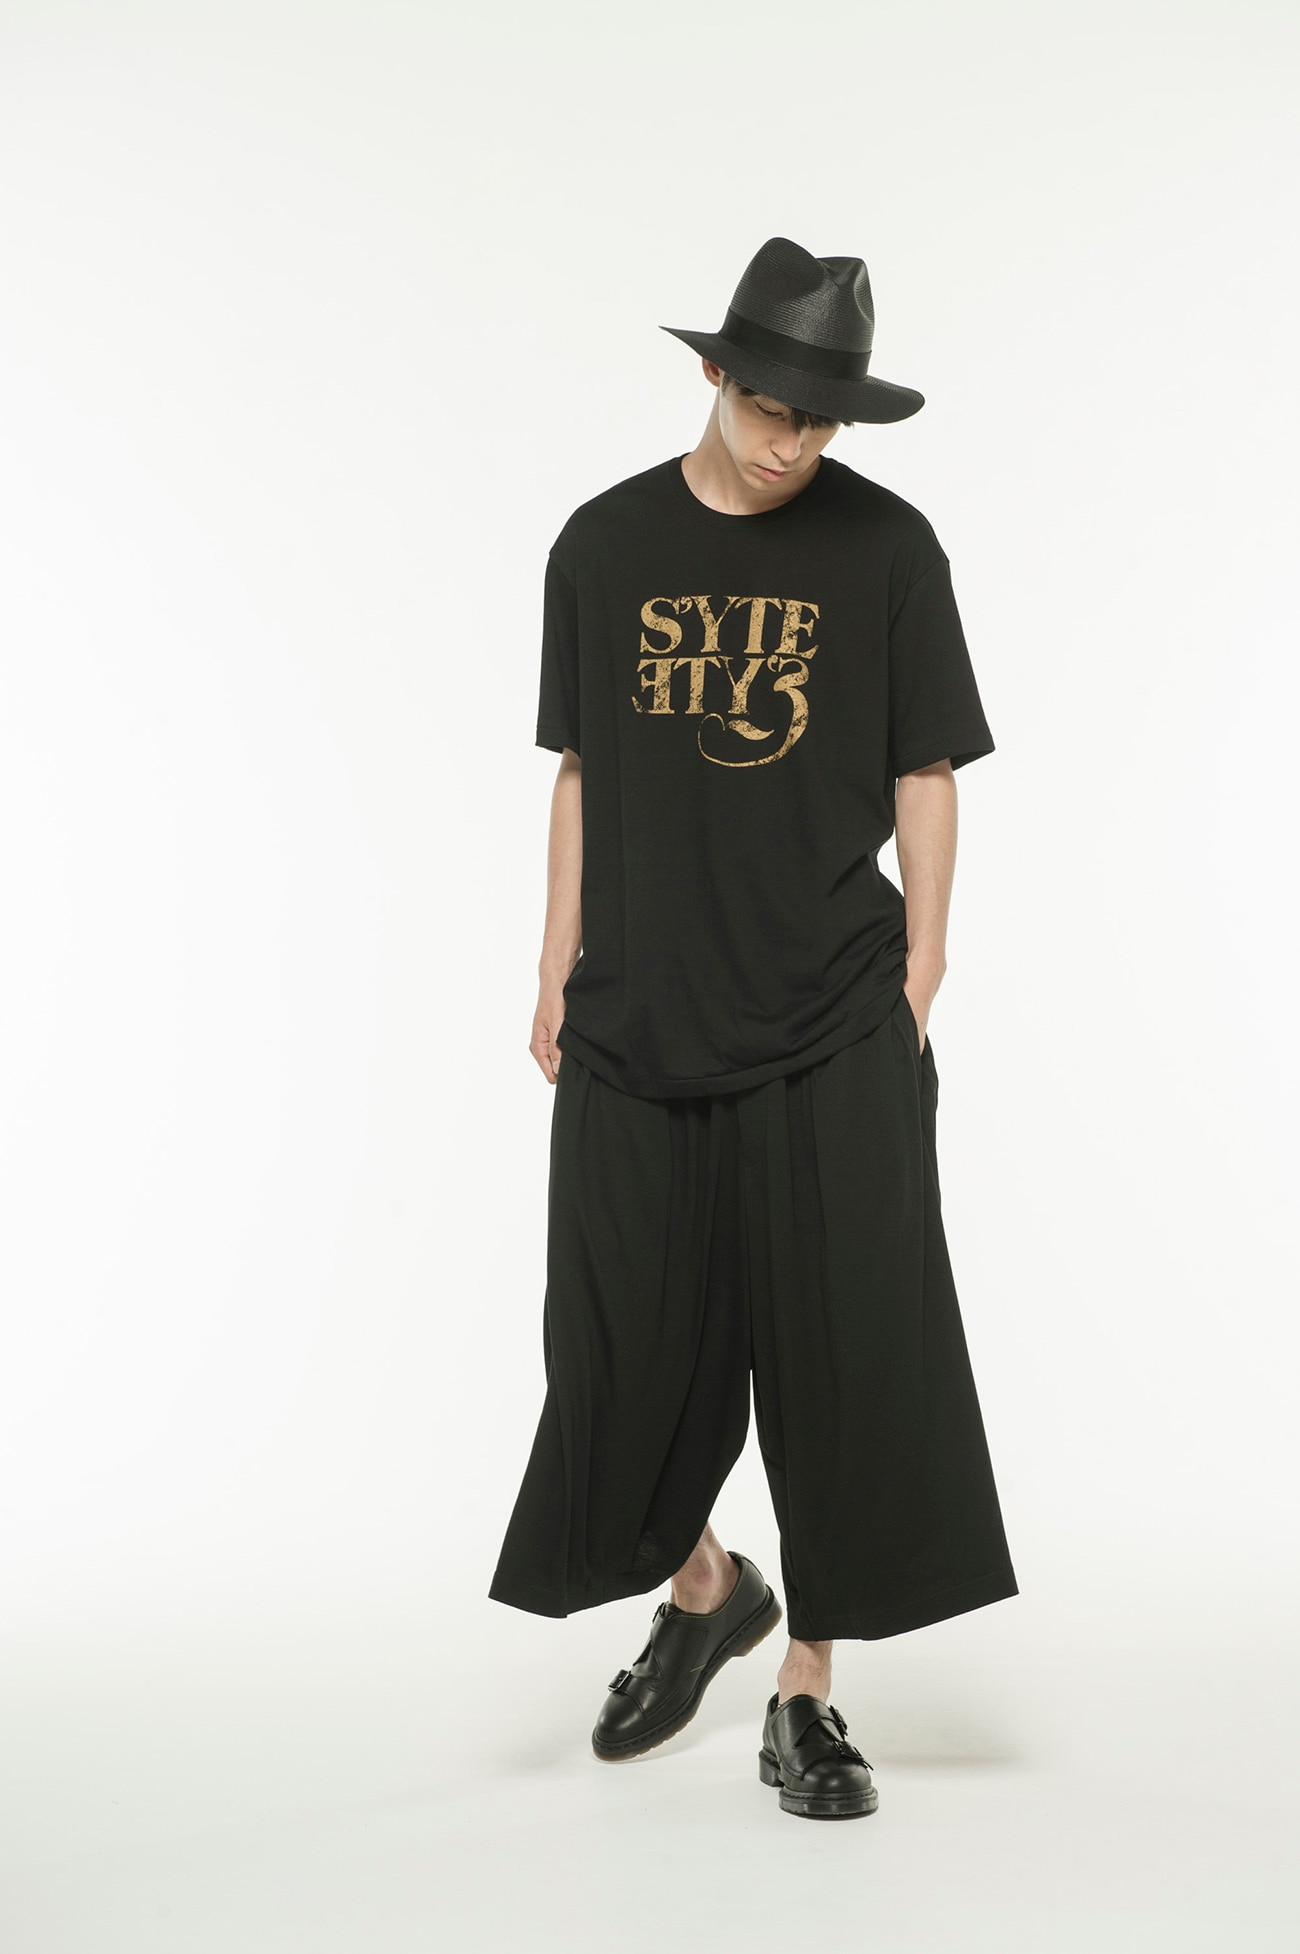 20/CottonJersey THE S'YTE WALTZ T-Shirt